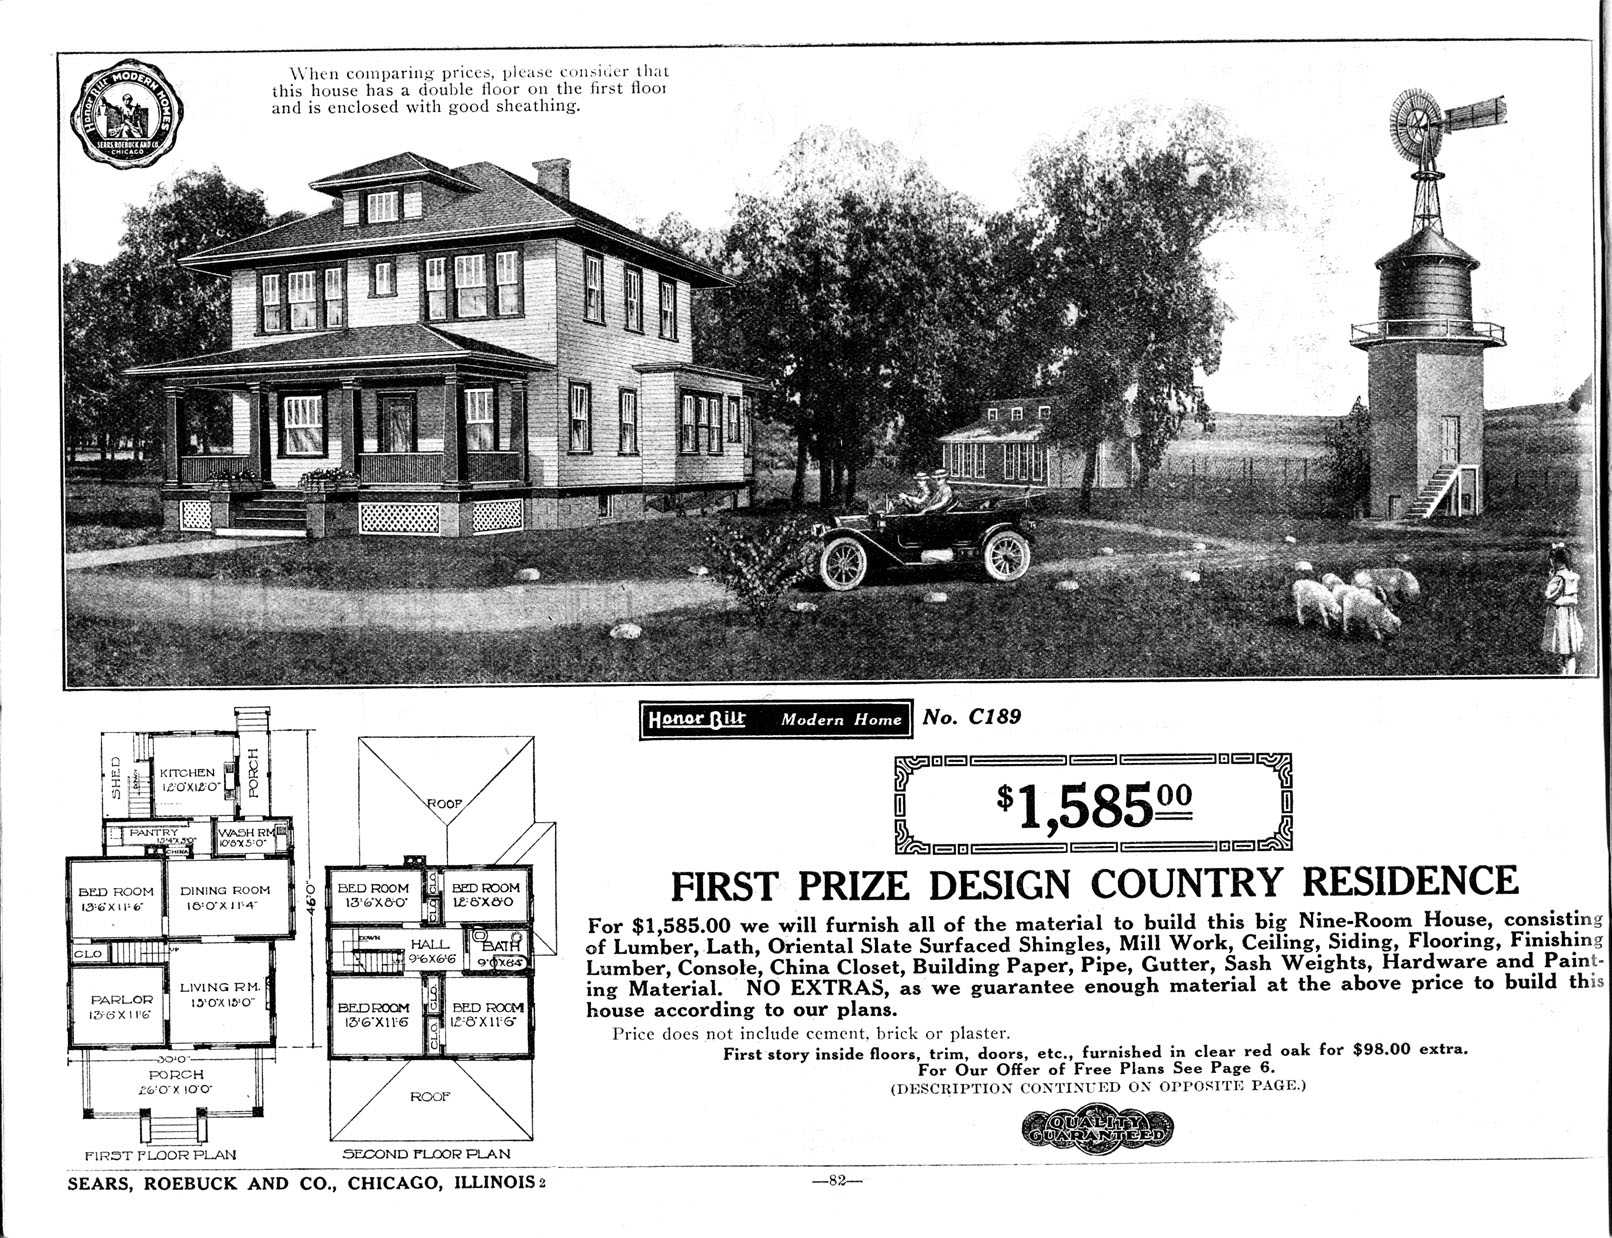 Modern Old Blueprints For Sale Gallery - Everything You Need to Know ...